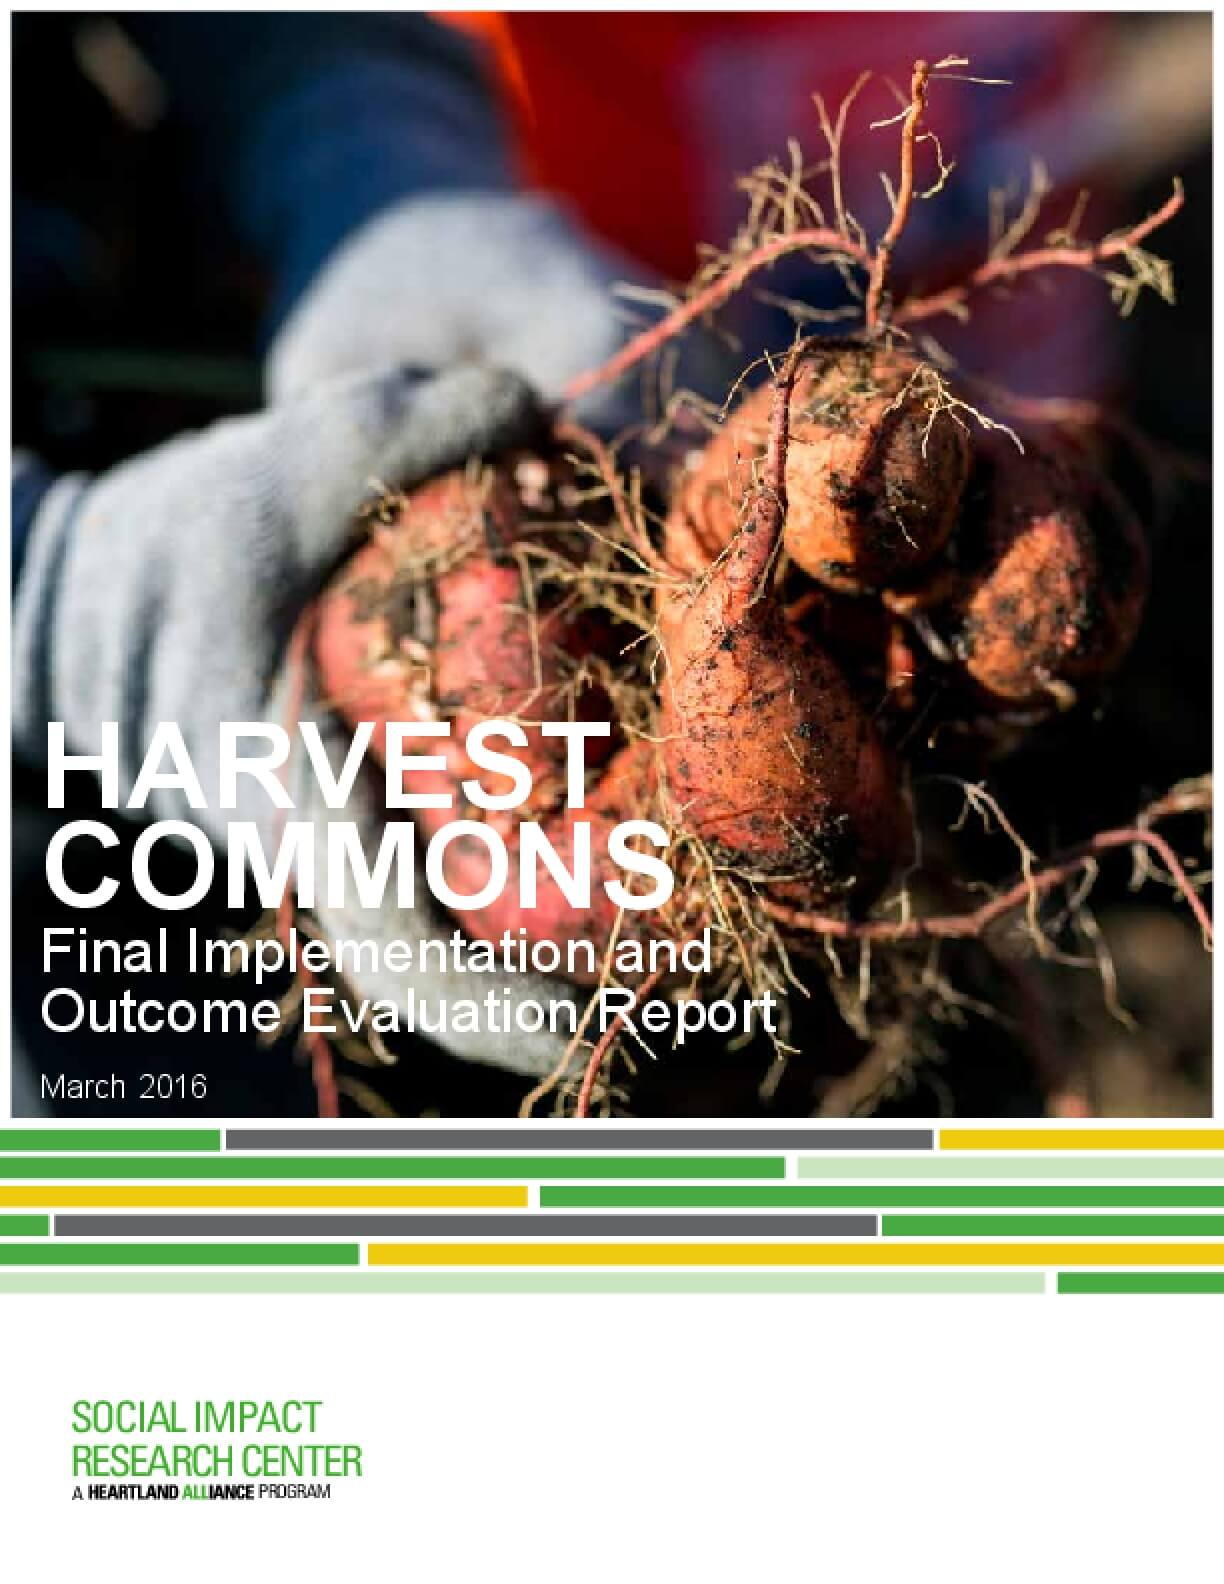 Harvest Commons: Final Implementation and Outcome Evaluation Report